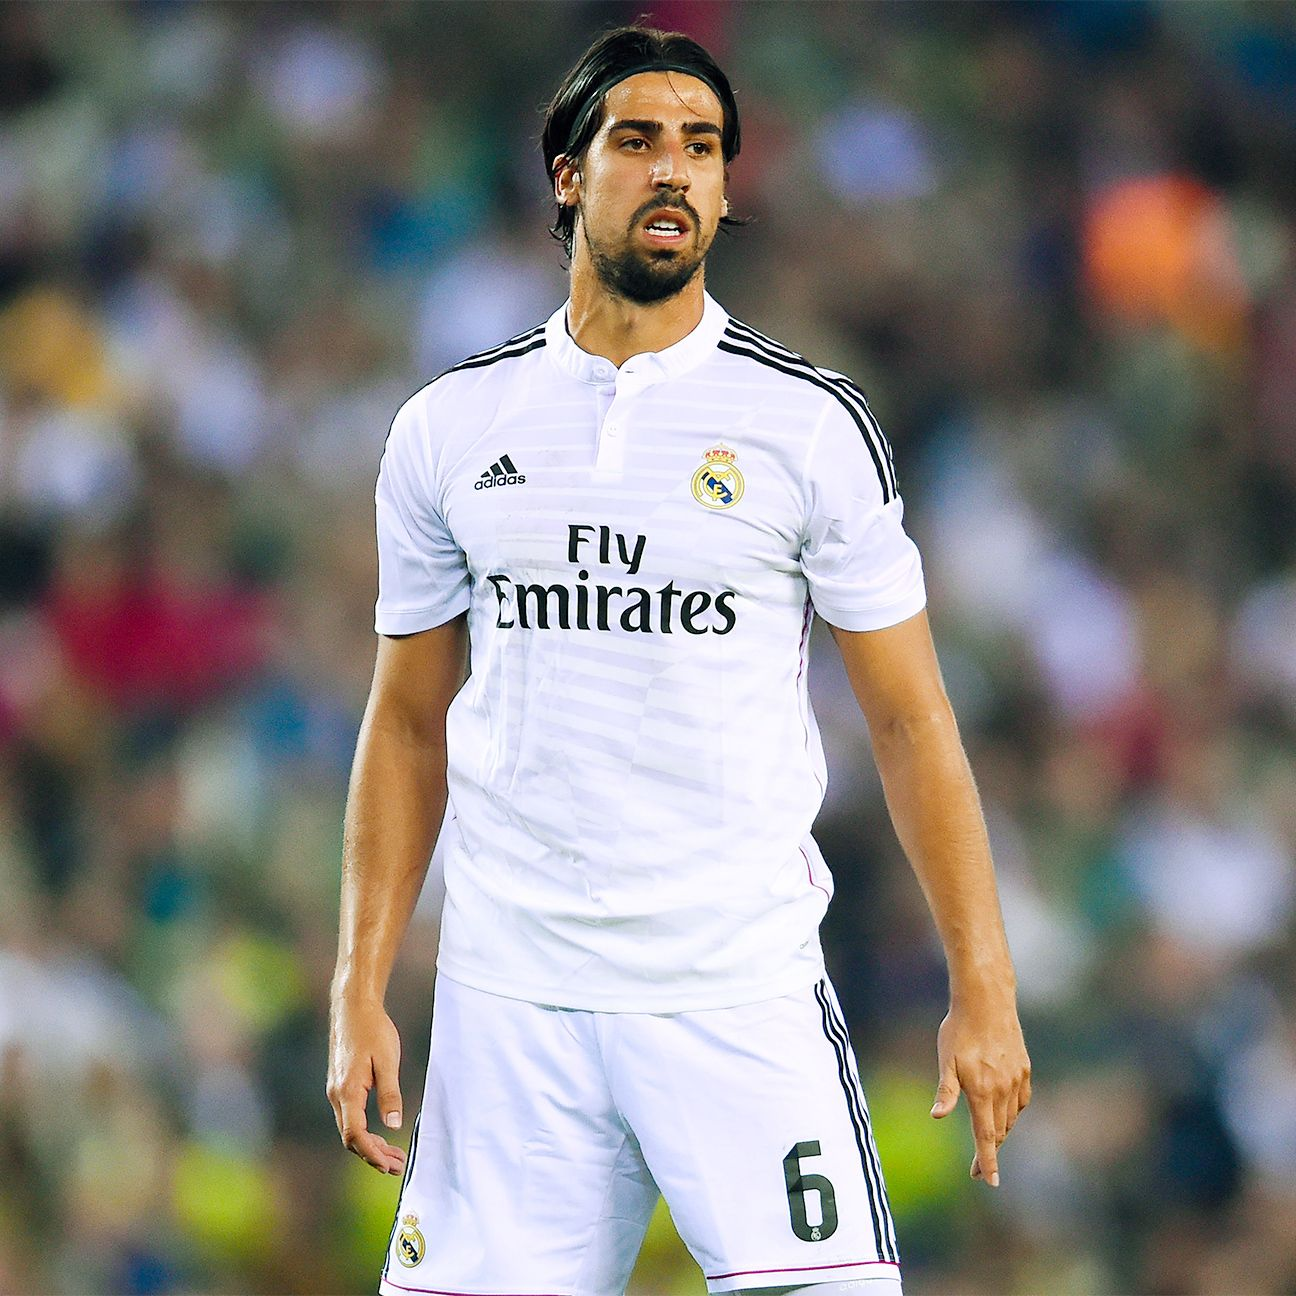 Sami Khedira never made more than 20 starts in a La Liga season during his five years with Real Madrid.